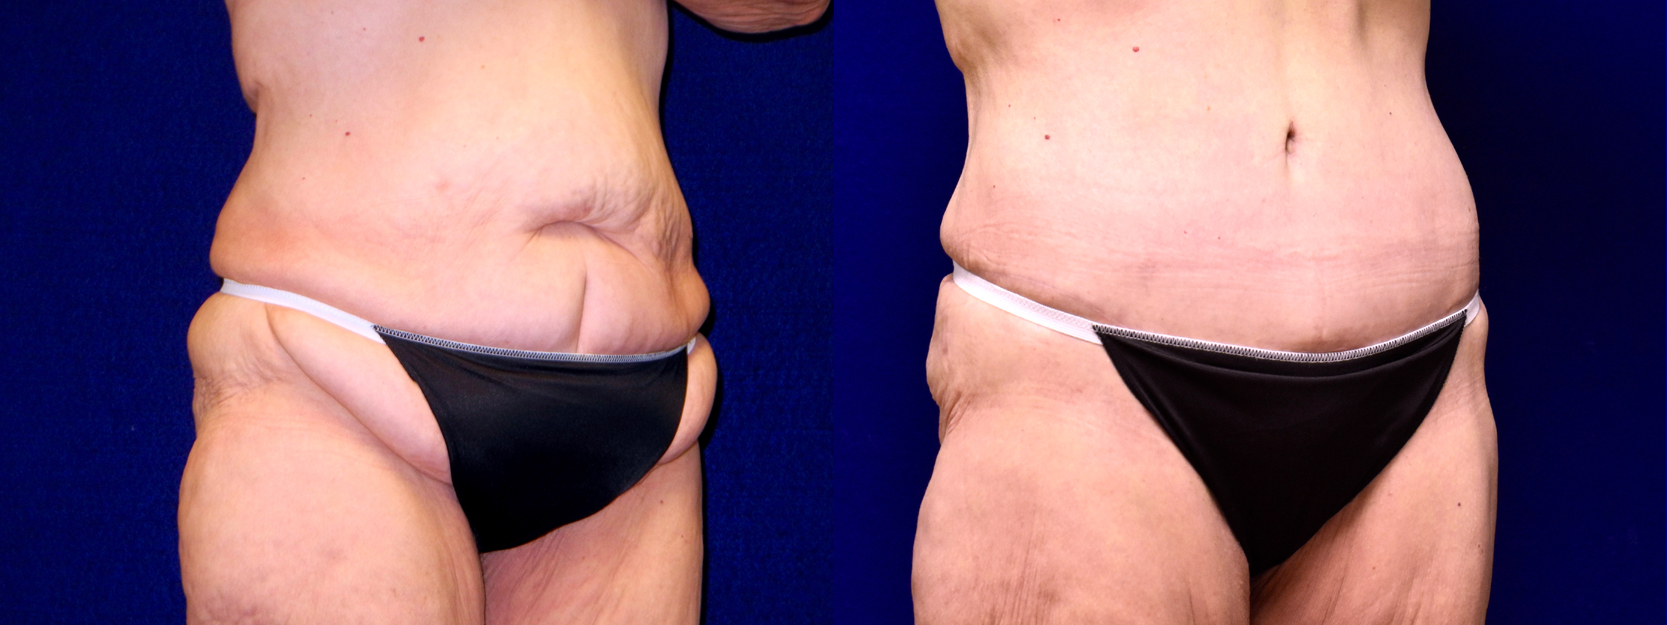 Right 3/4 View - Extended Tummy Tuck